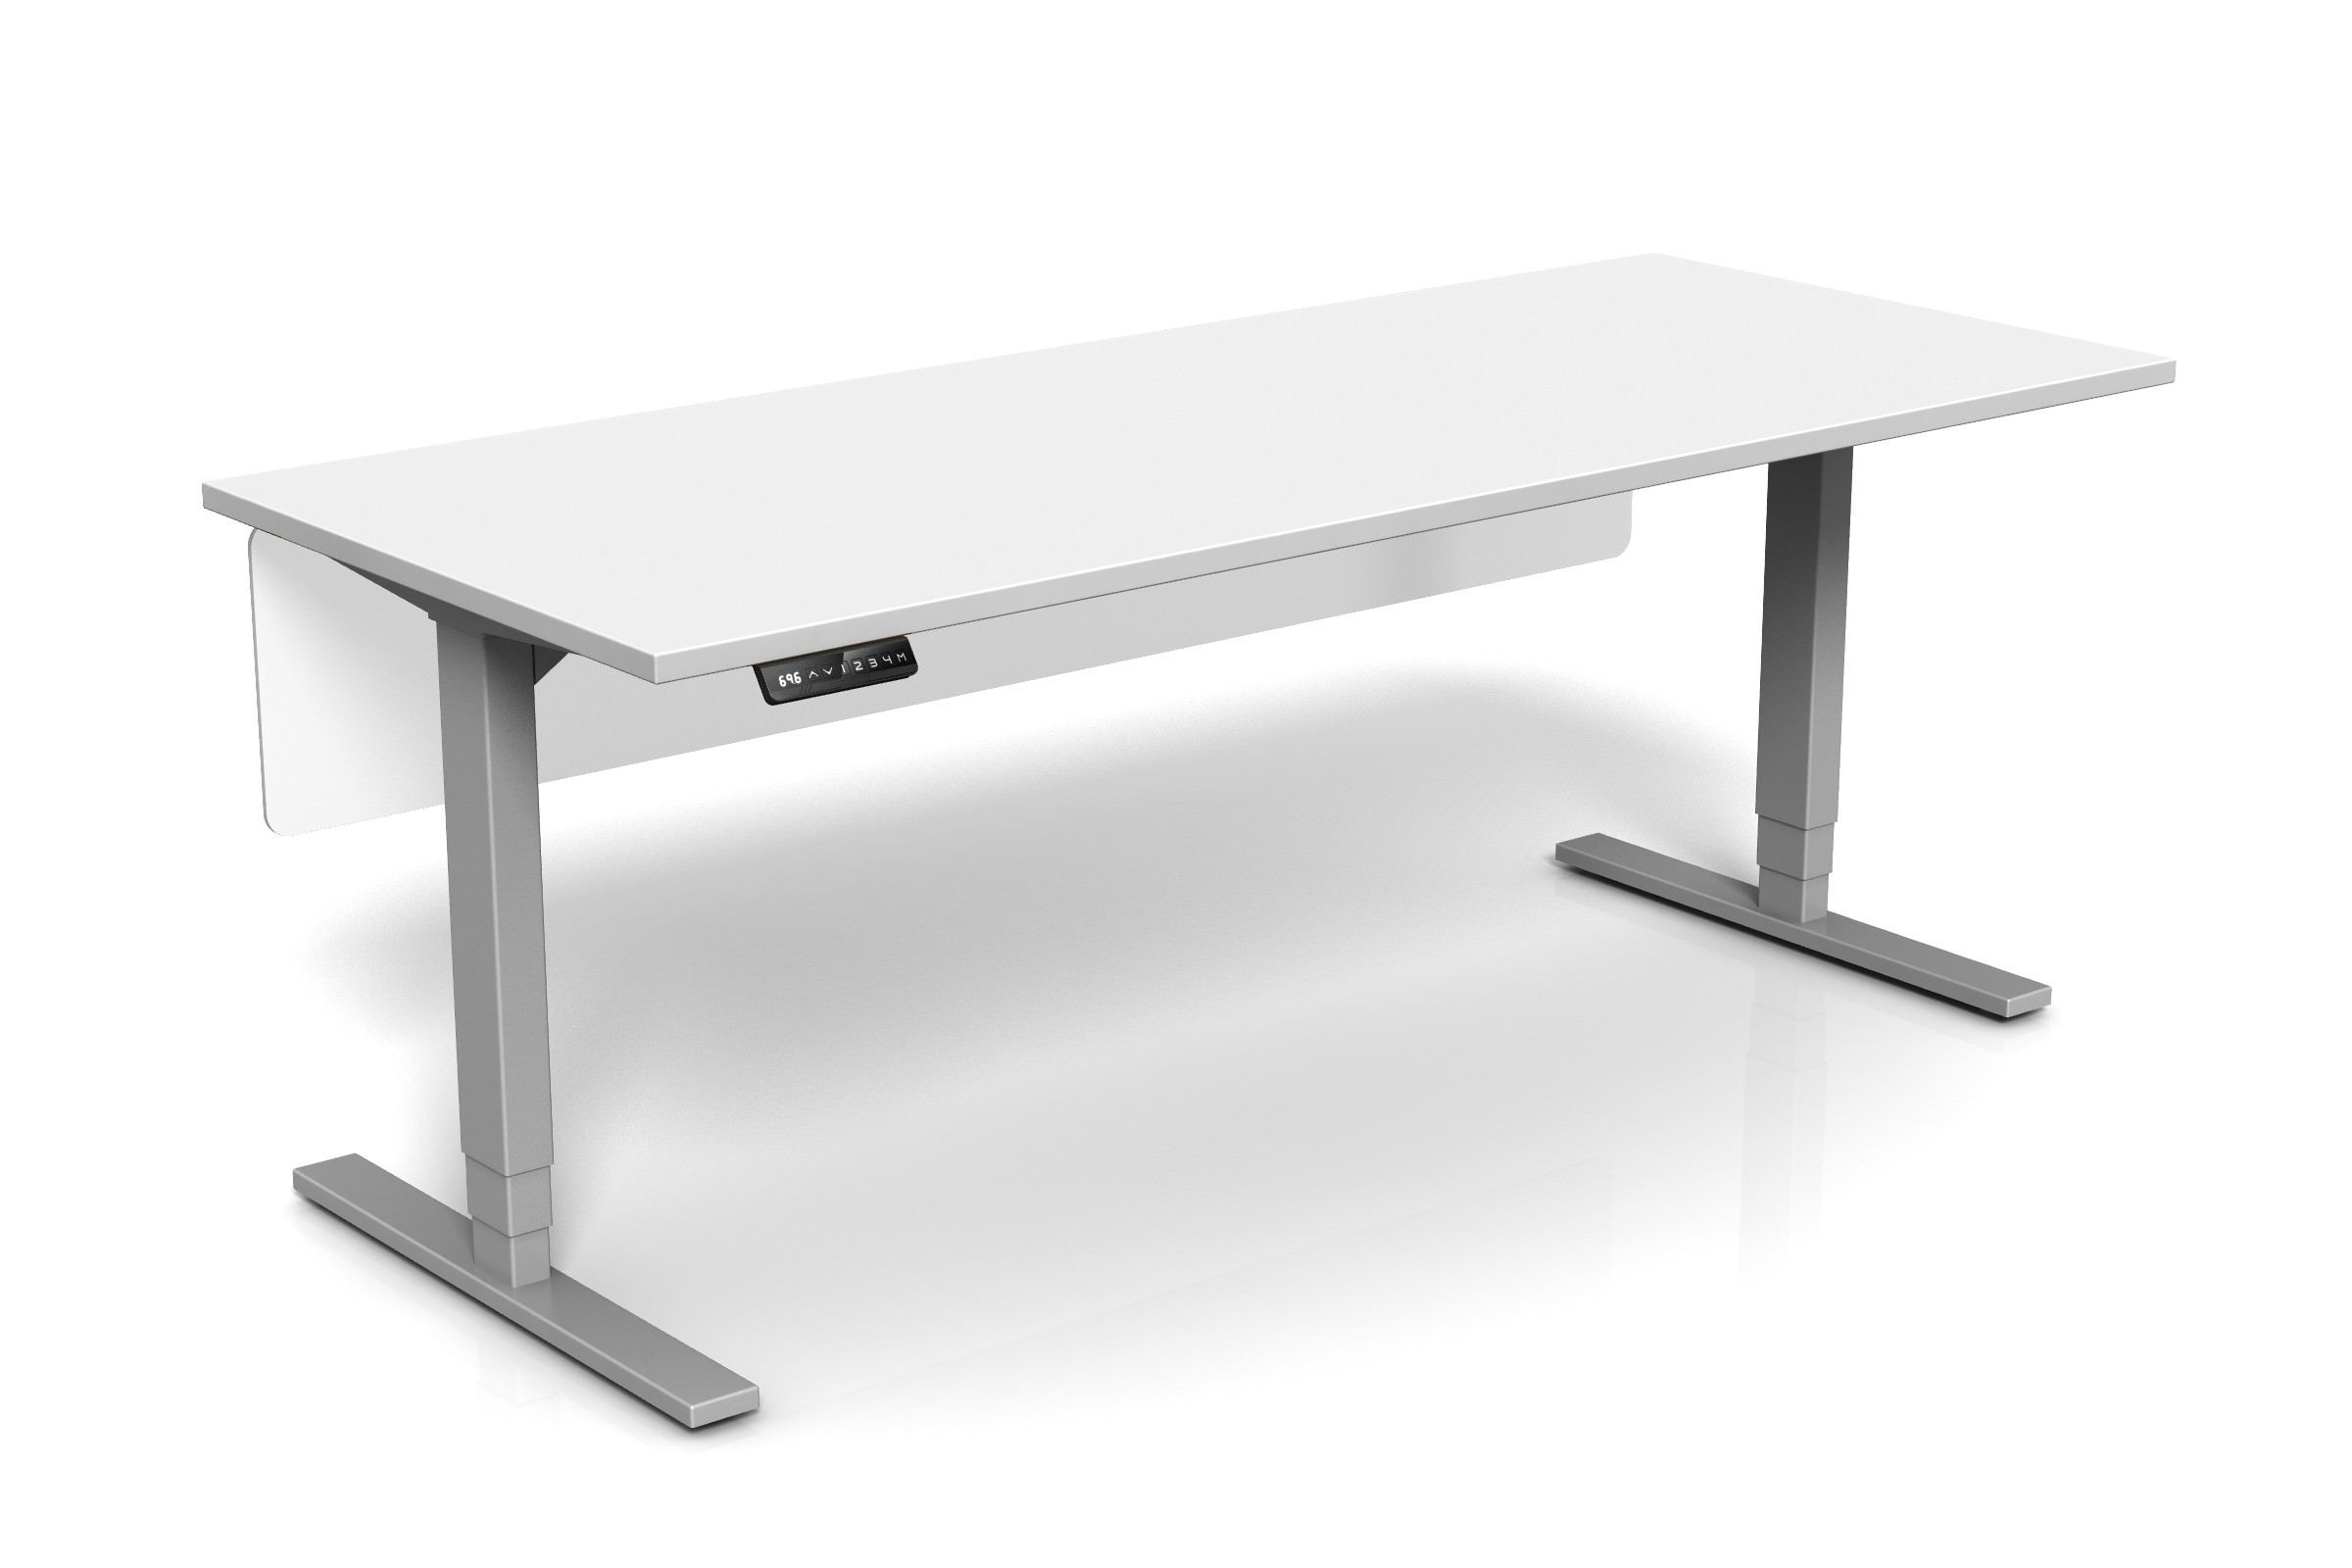 Height Adjustable Work Table From Merge Works TX